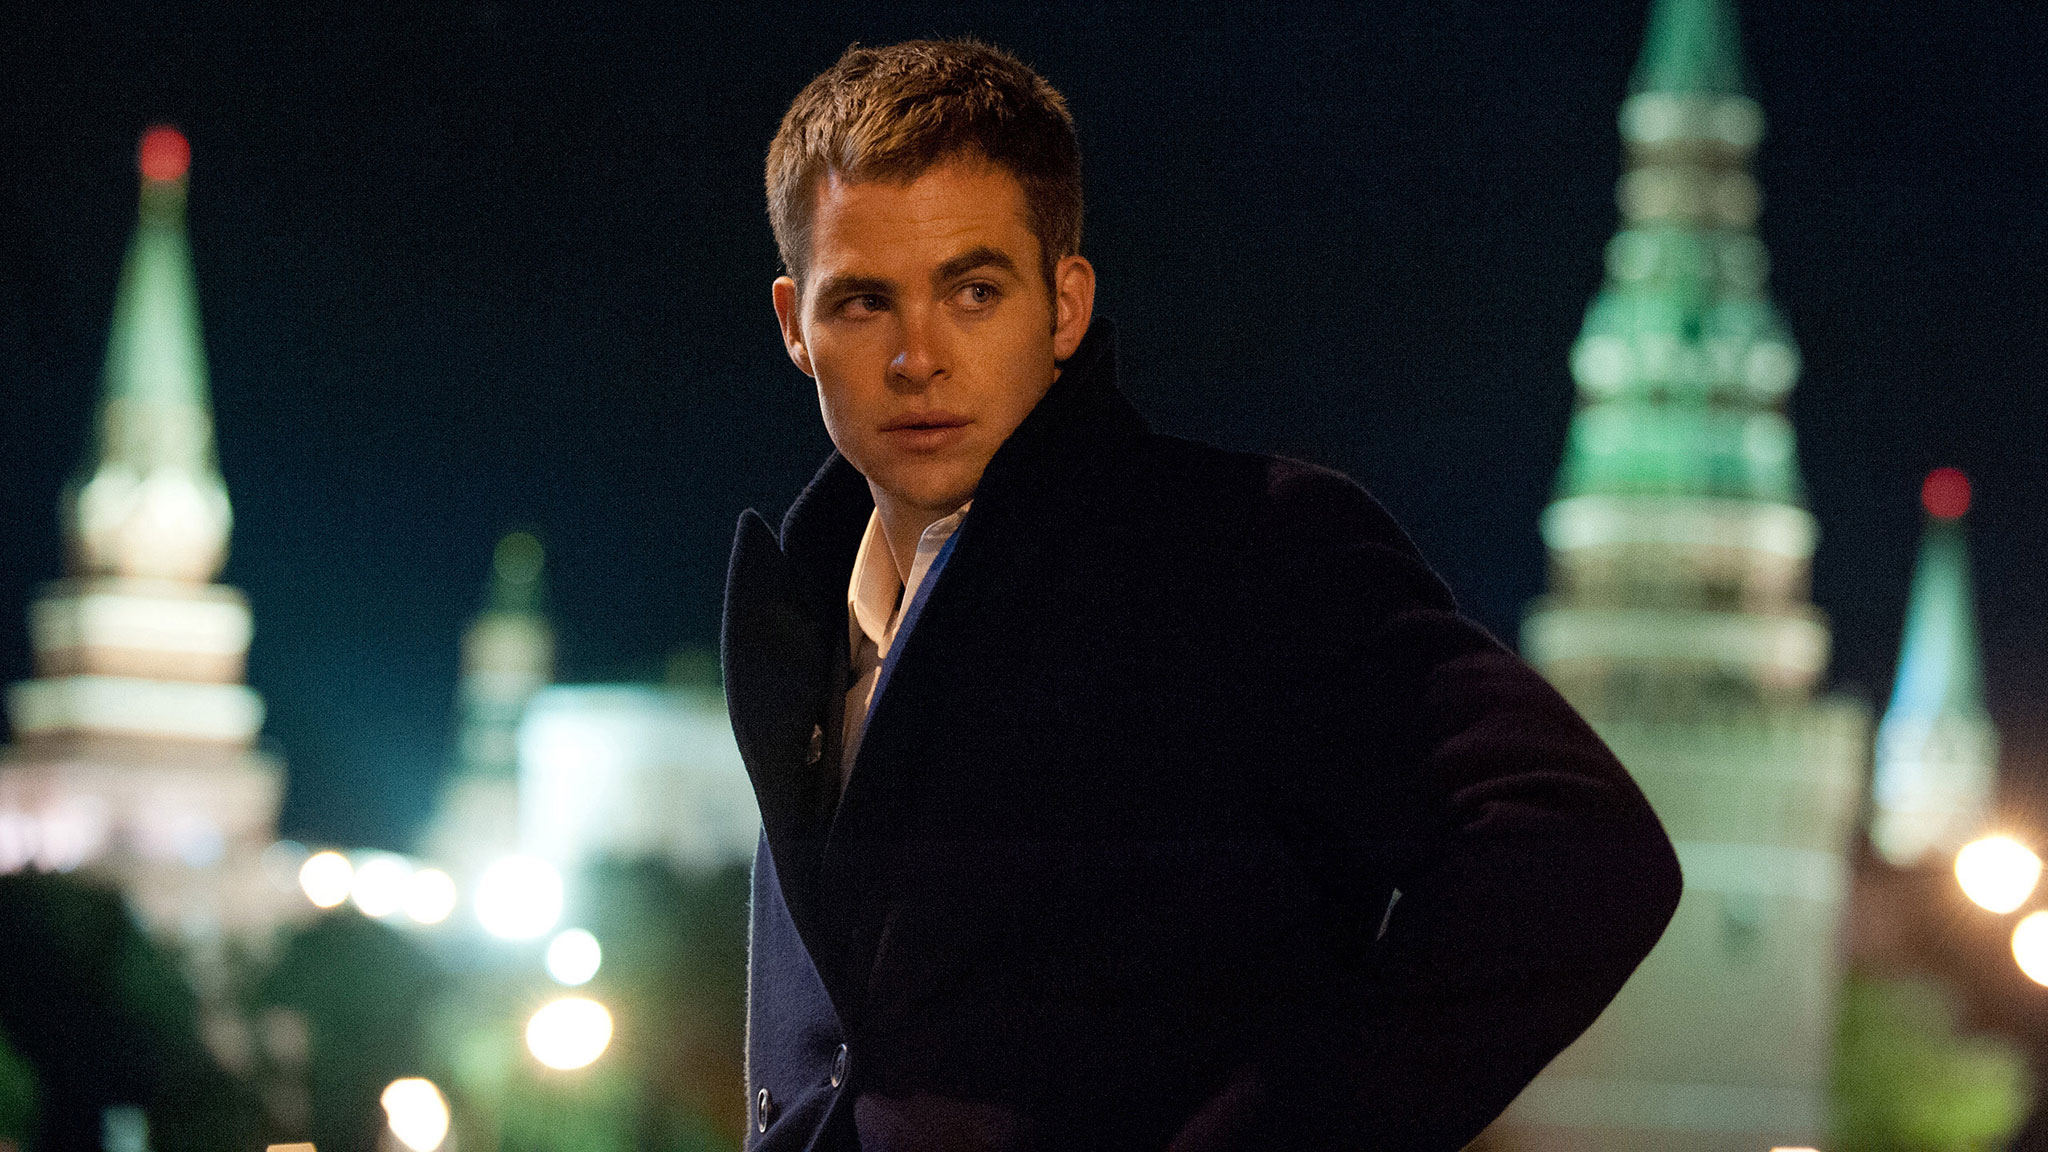 Chris Pine stars in 'Jack Ryan: Shadow Recruit' (Photo: Paramount Pictures)